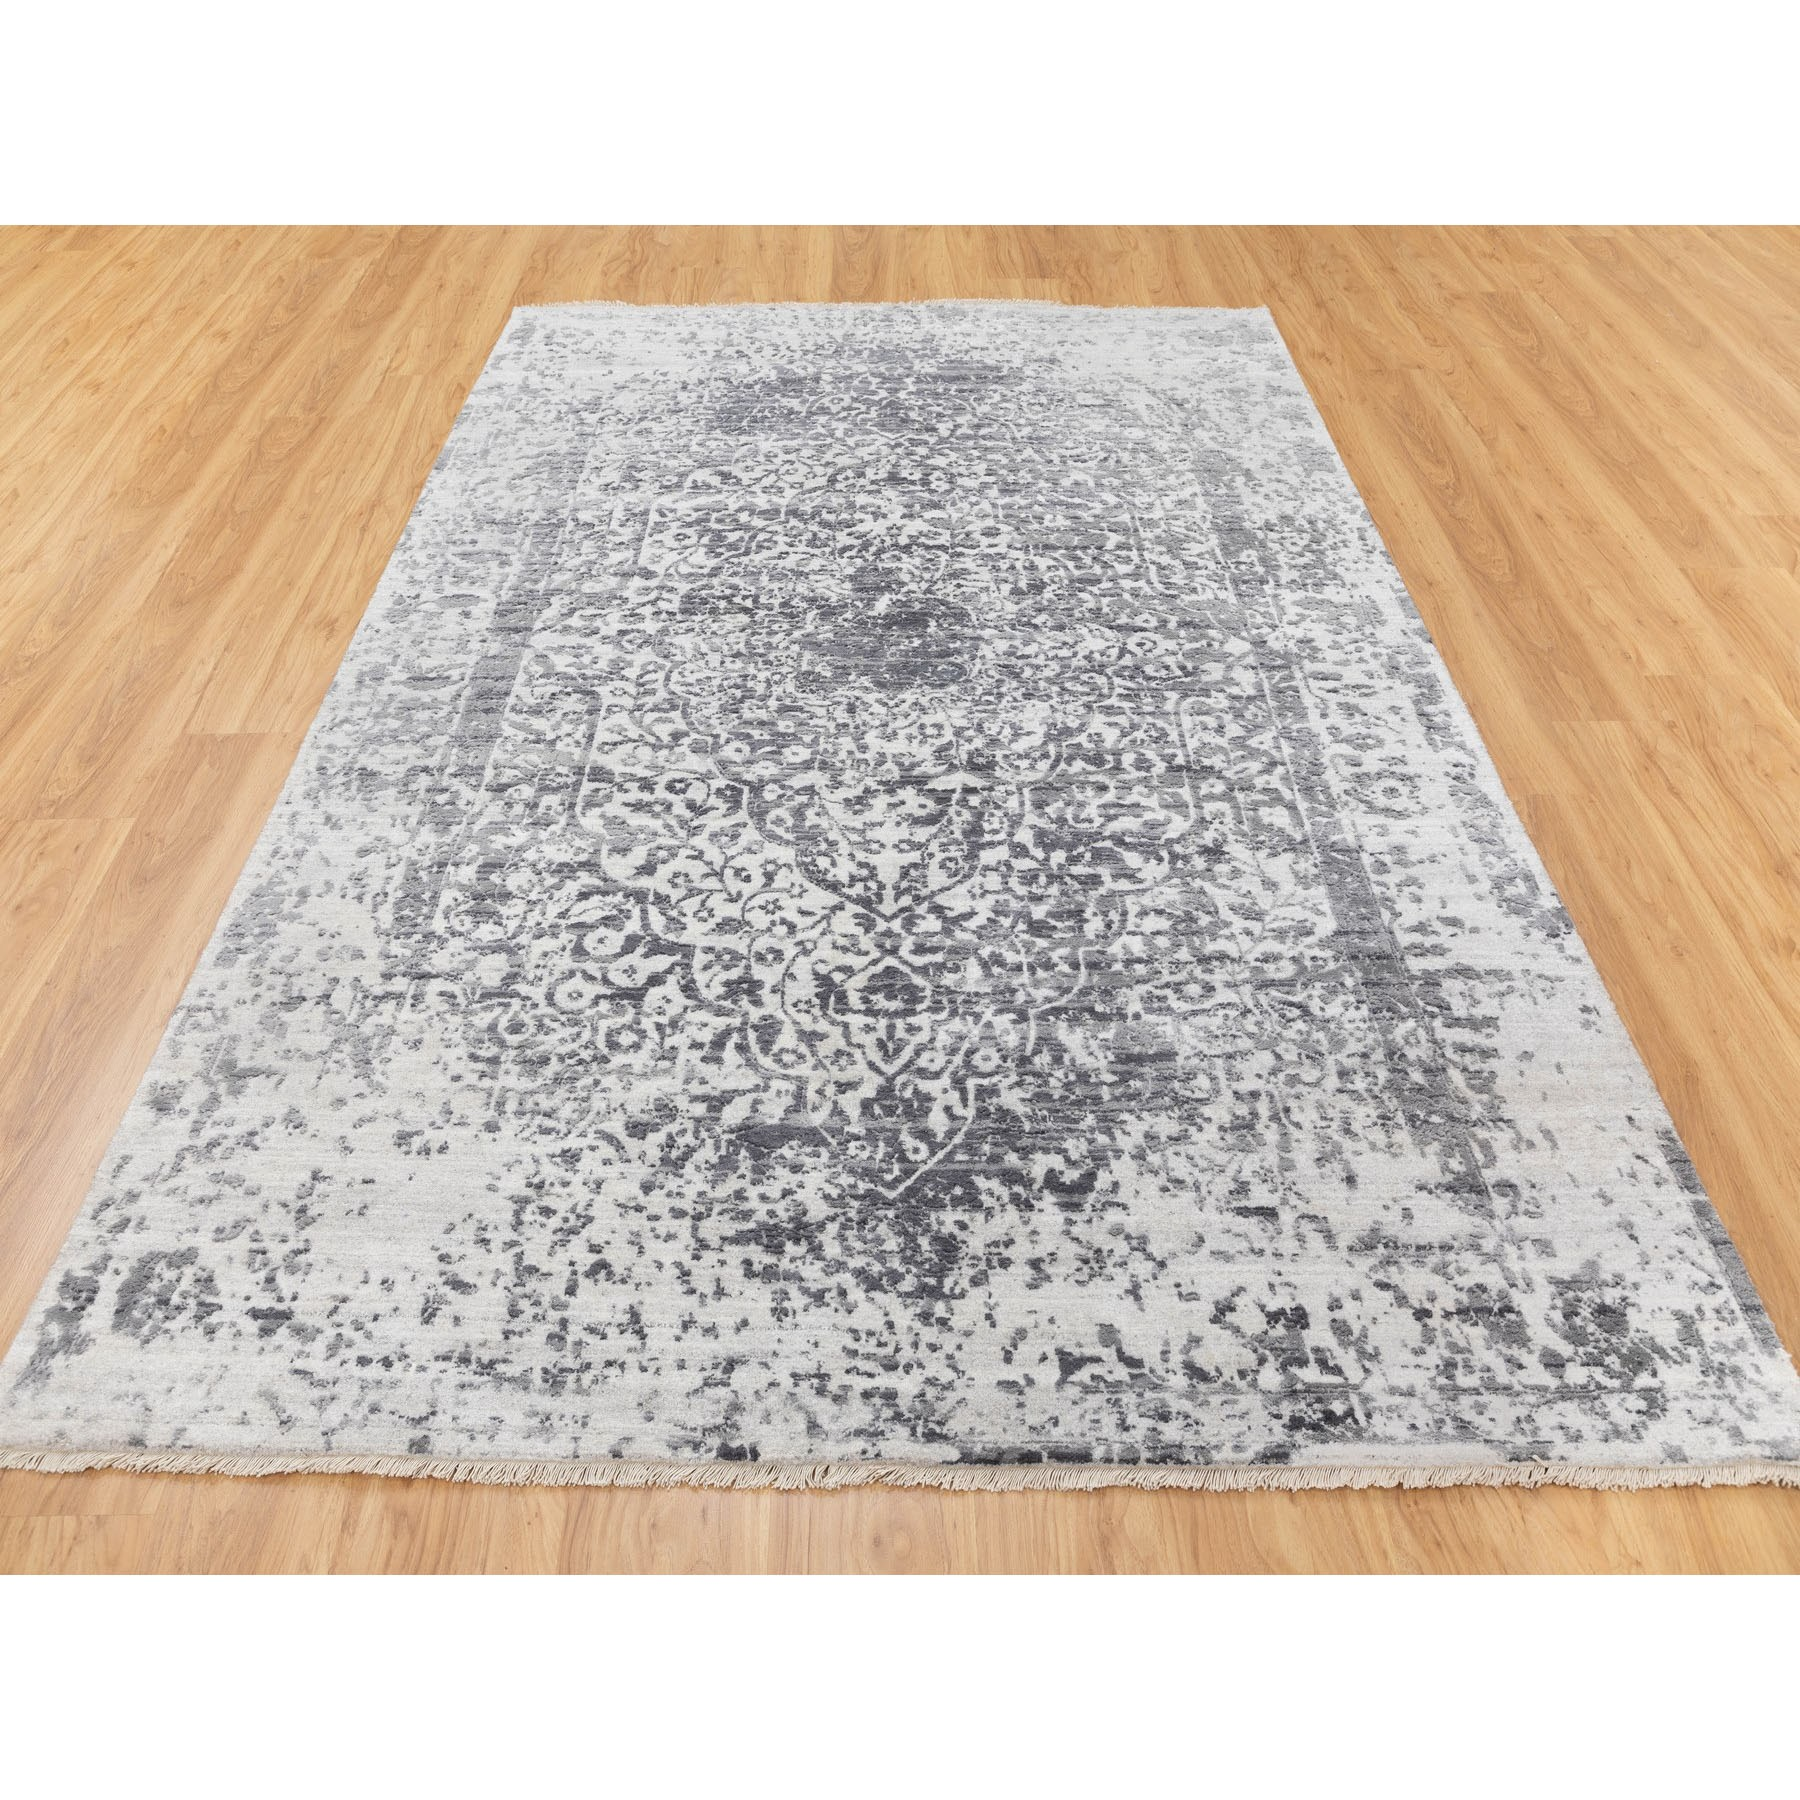 """6'x9'2"""" Wool And Silk Hand Knotted Broken Persian Design Hand Knotted Oriental Rug"""